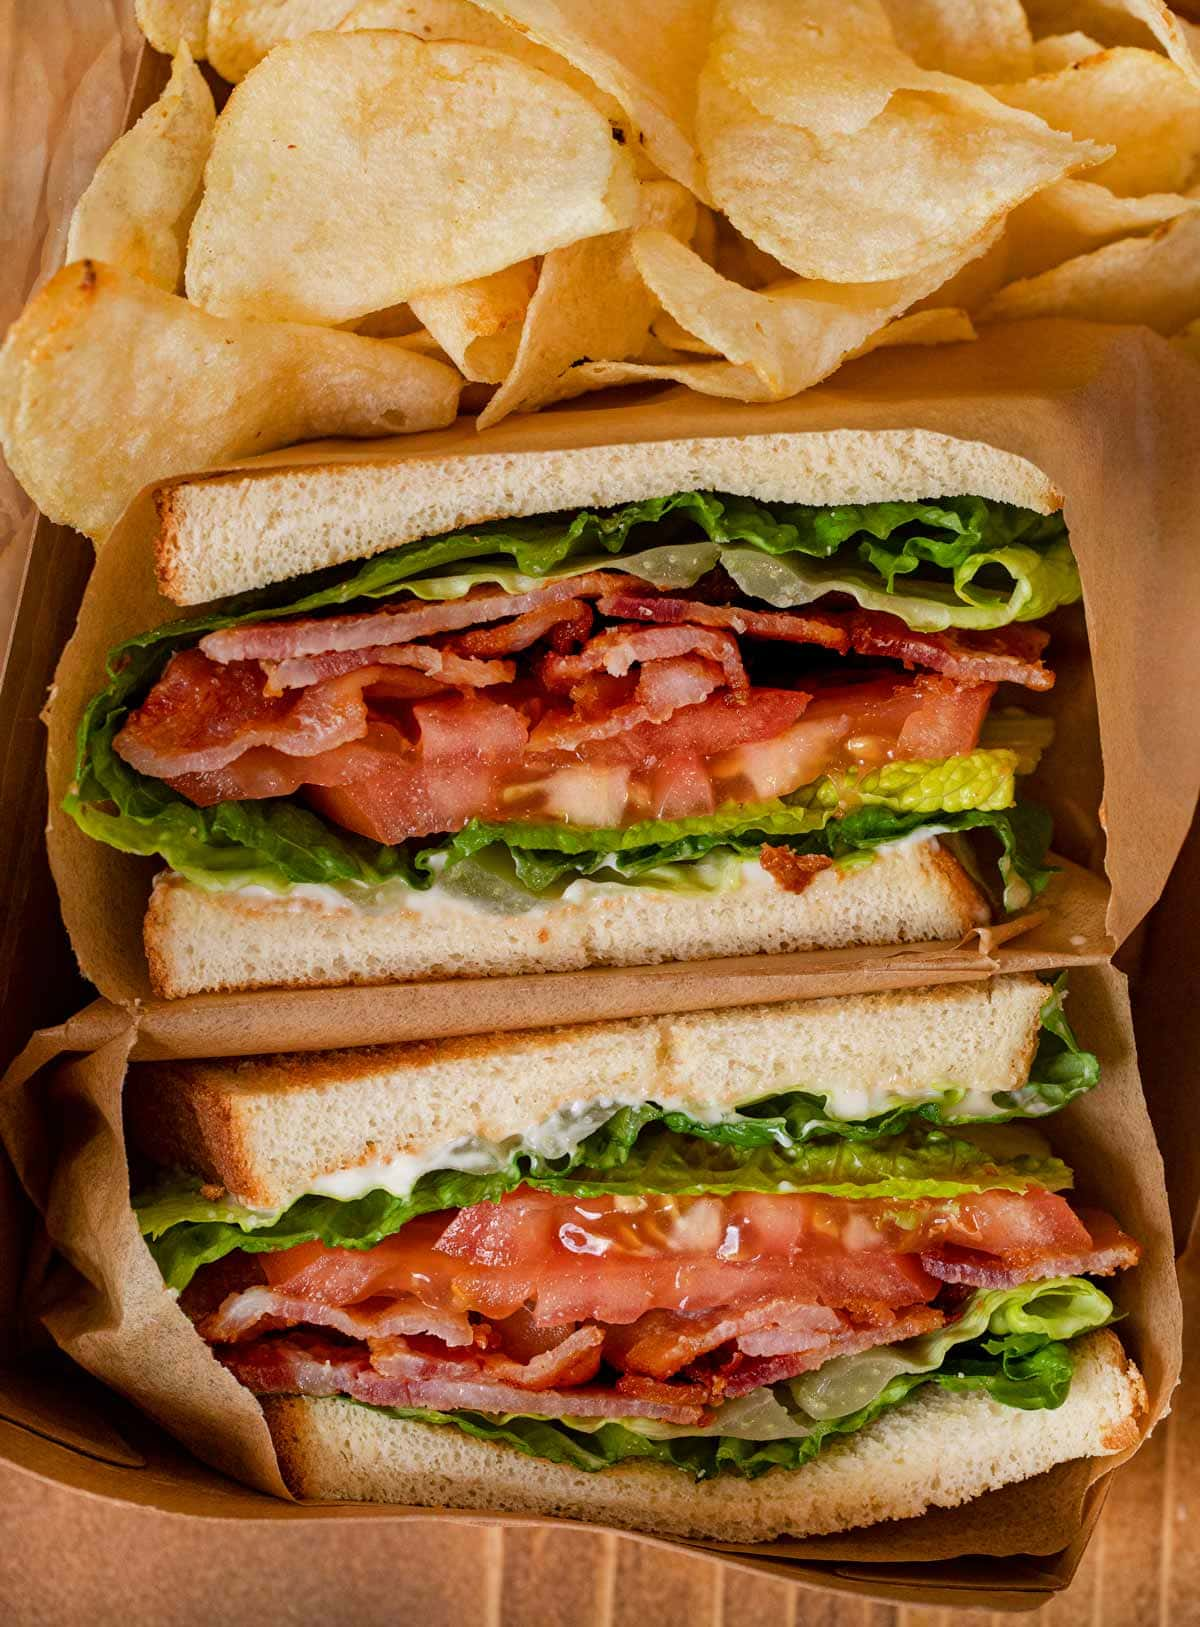 BLT Sandwich sliced in half with chips